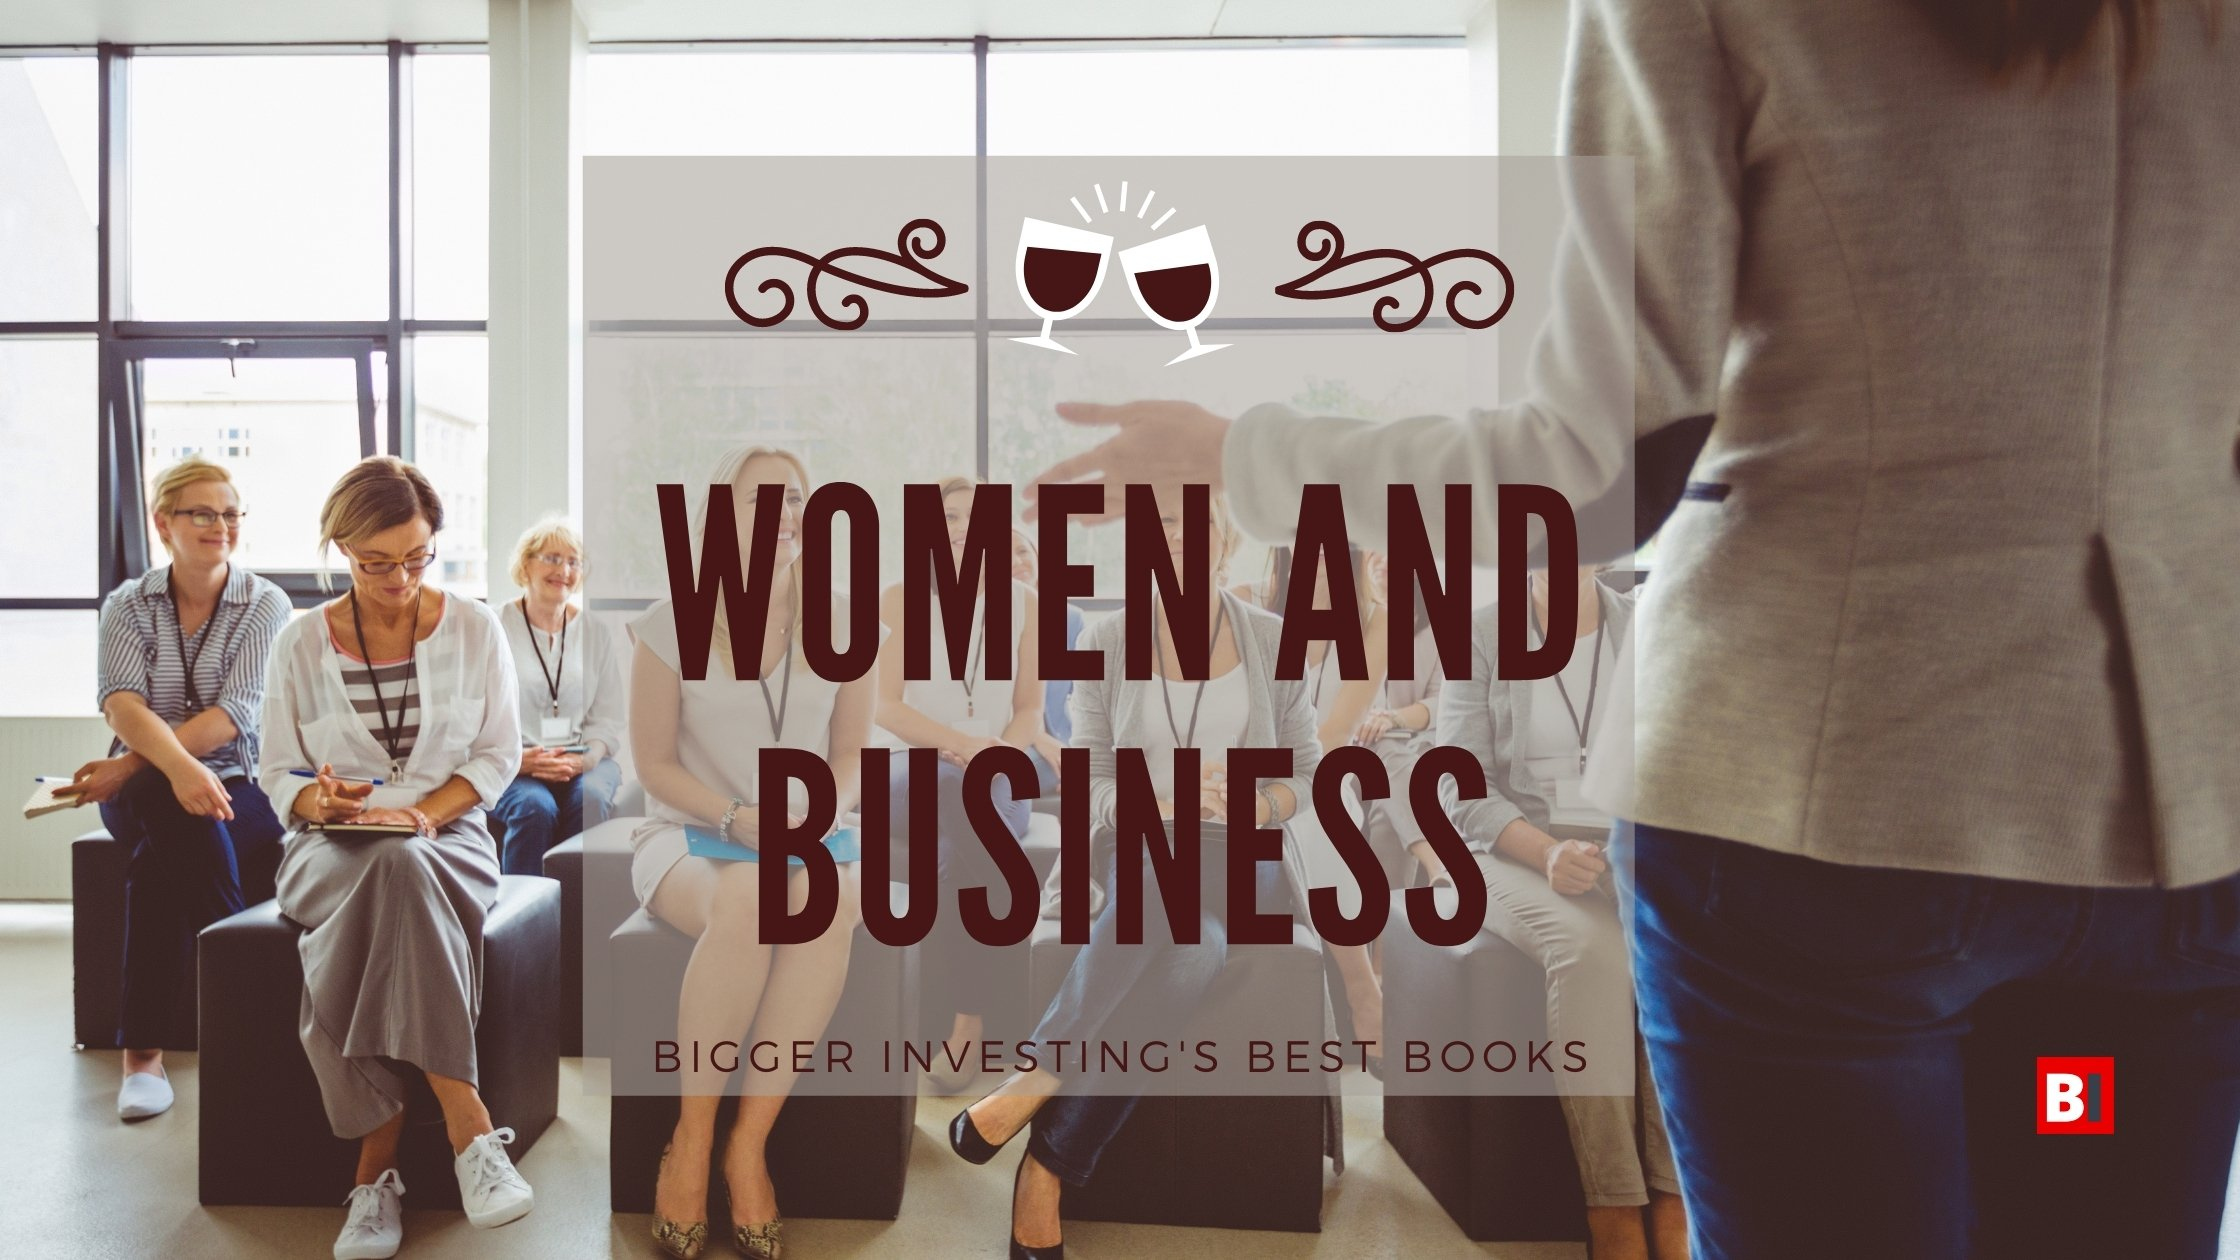 Best Books on Women and Business